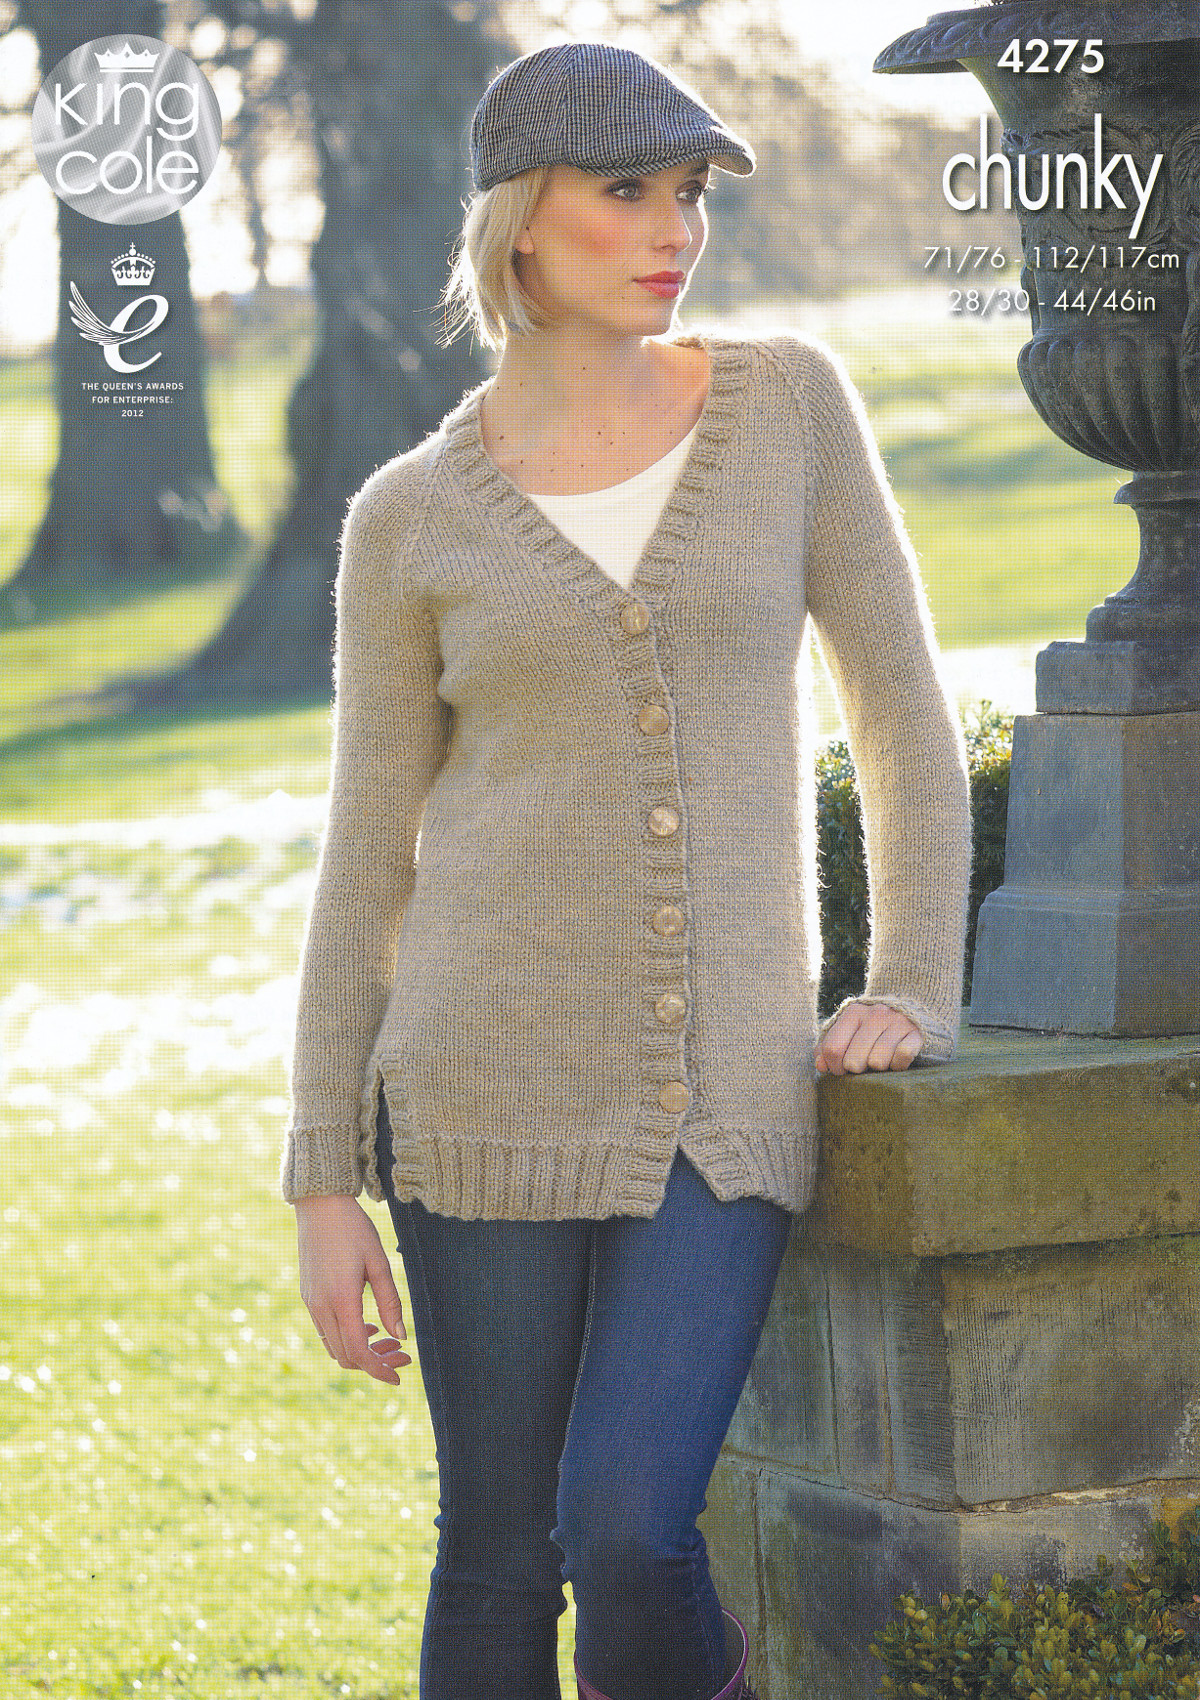 King Cole Ladies Magnum Chunky Knitting Pattern V Neck Cardigan ...